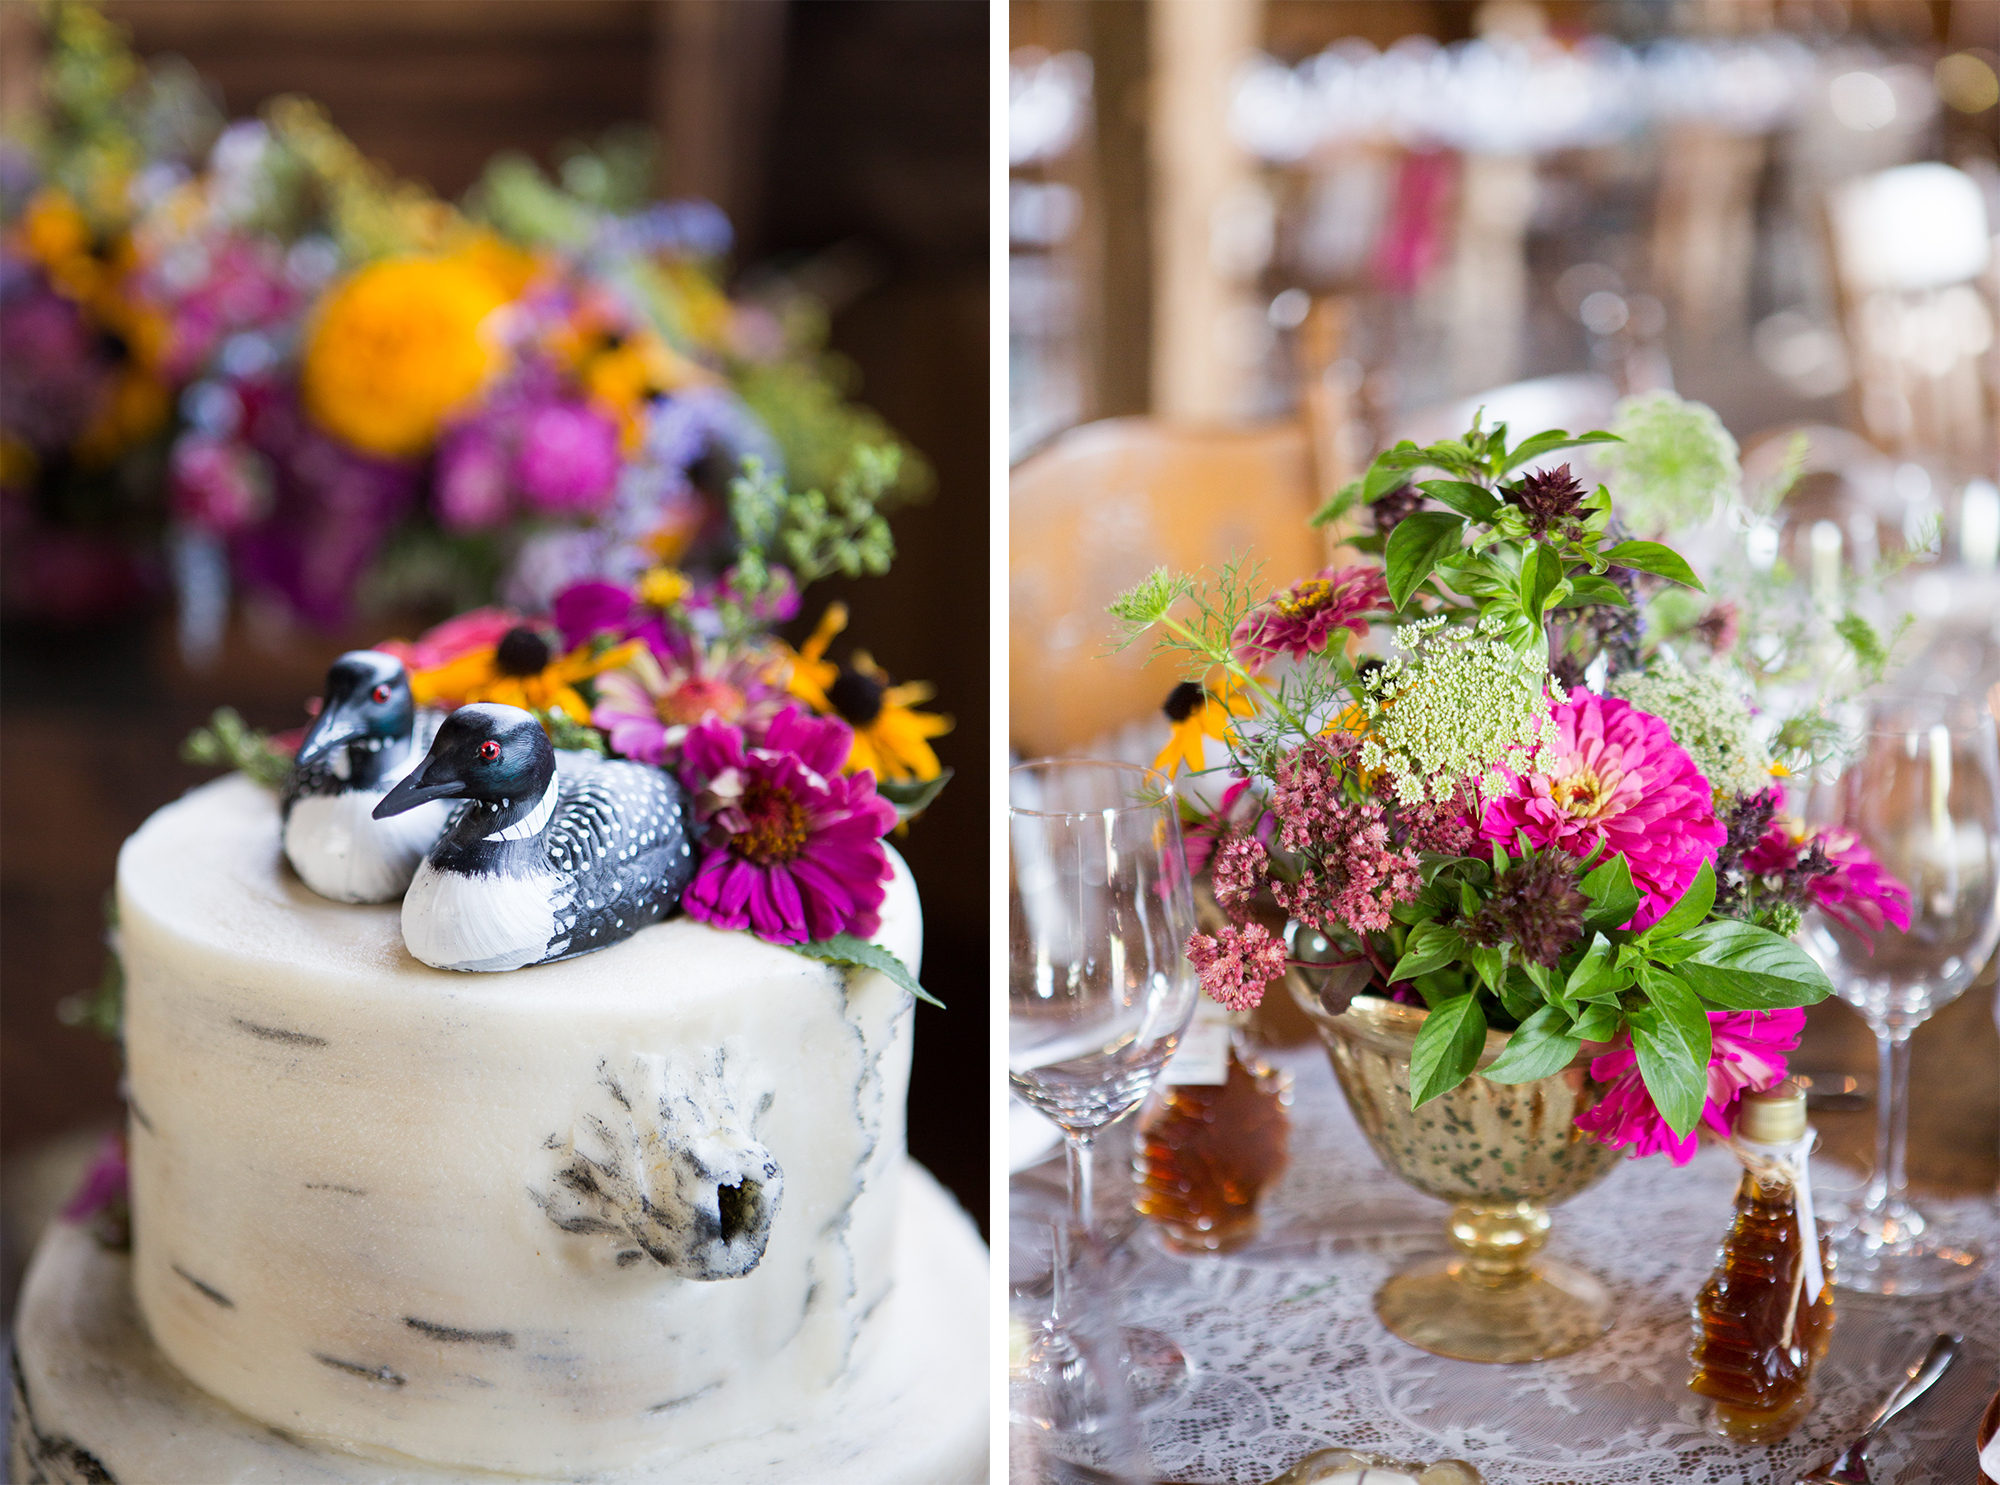 Cake Loon Flowers South Pond Farms Zsuzsi Pal Photography Wedding